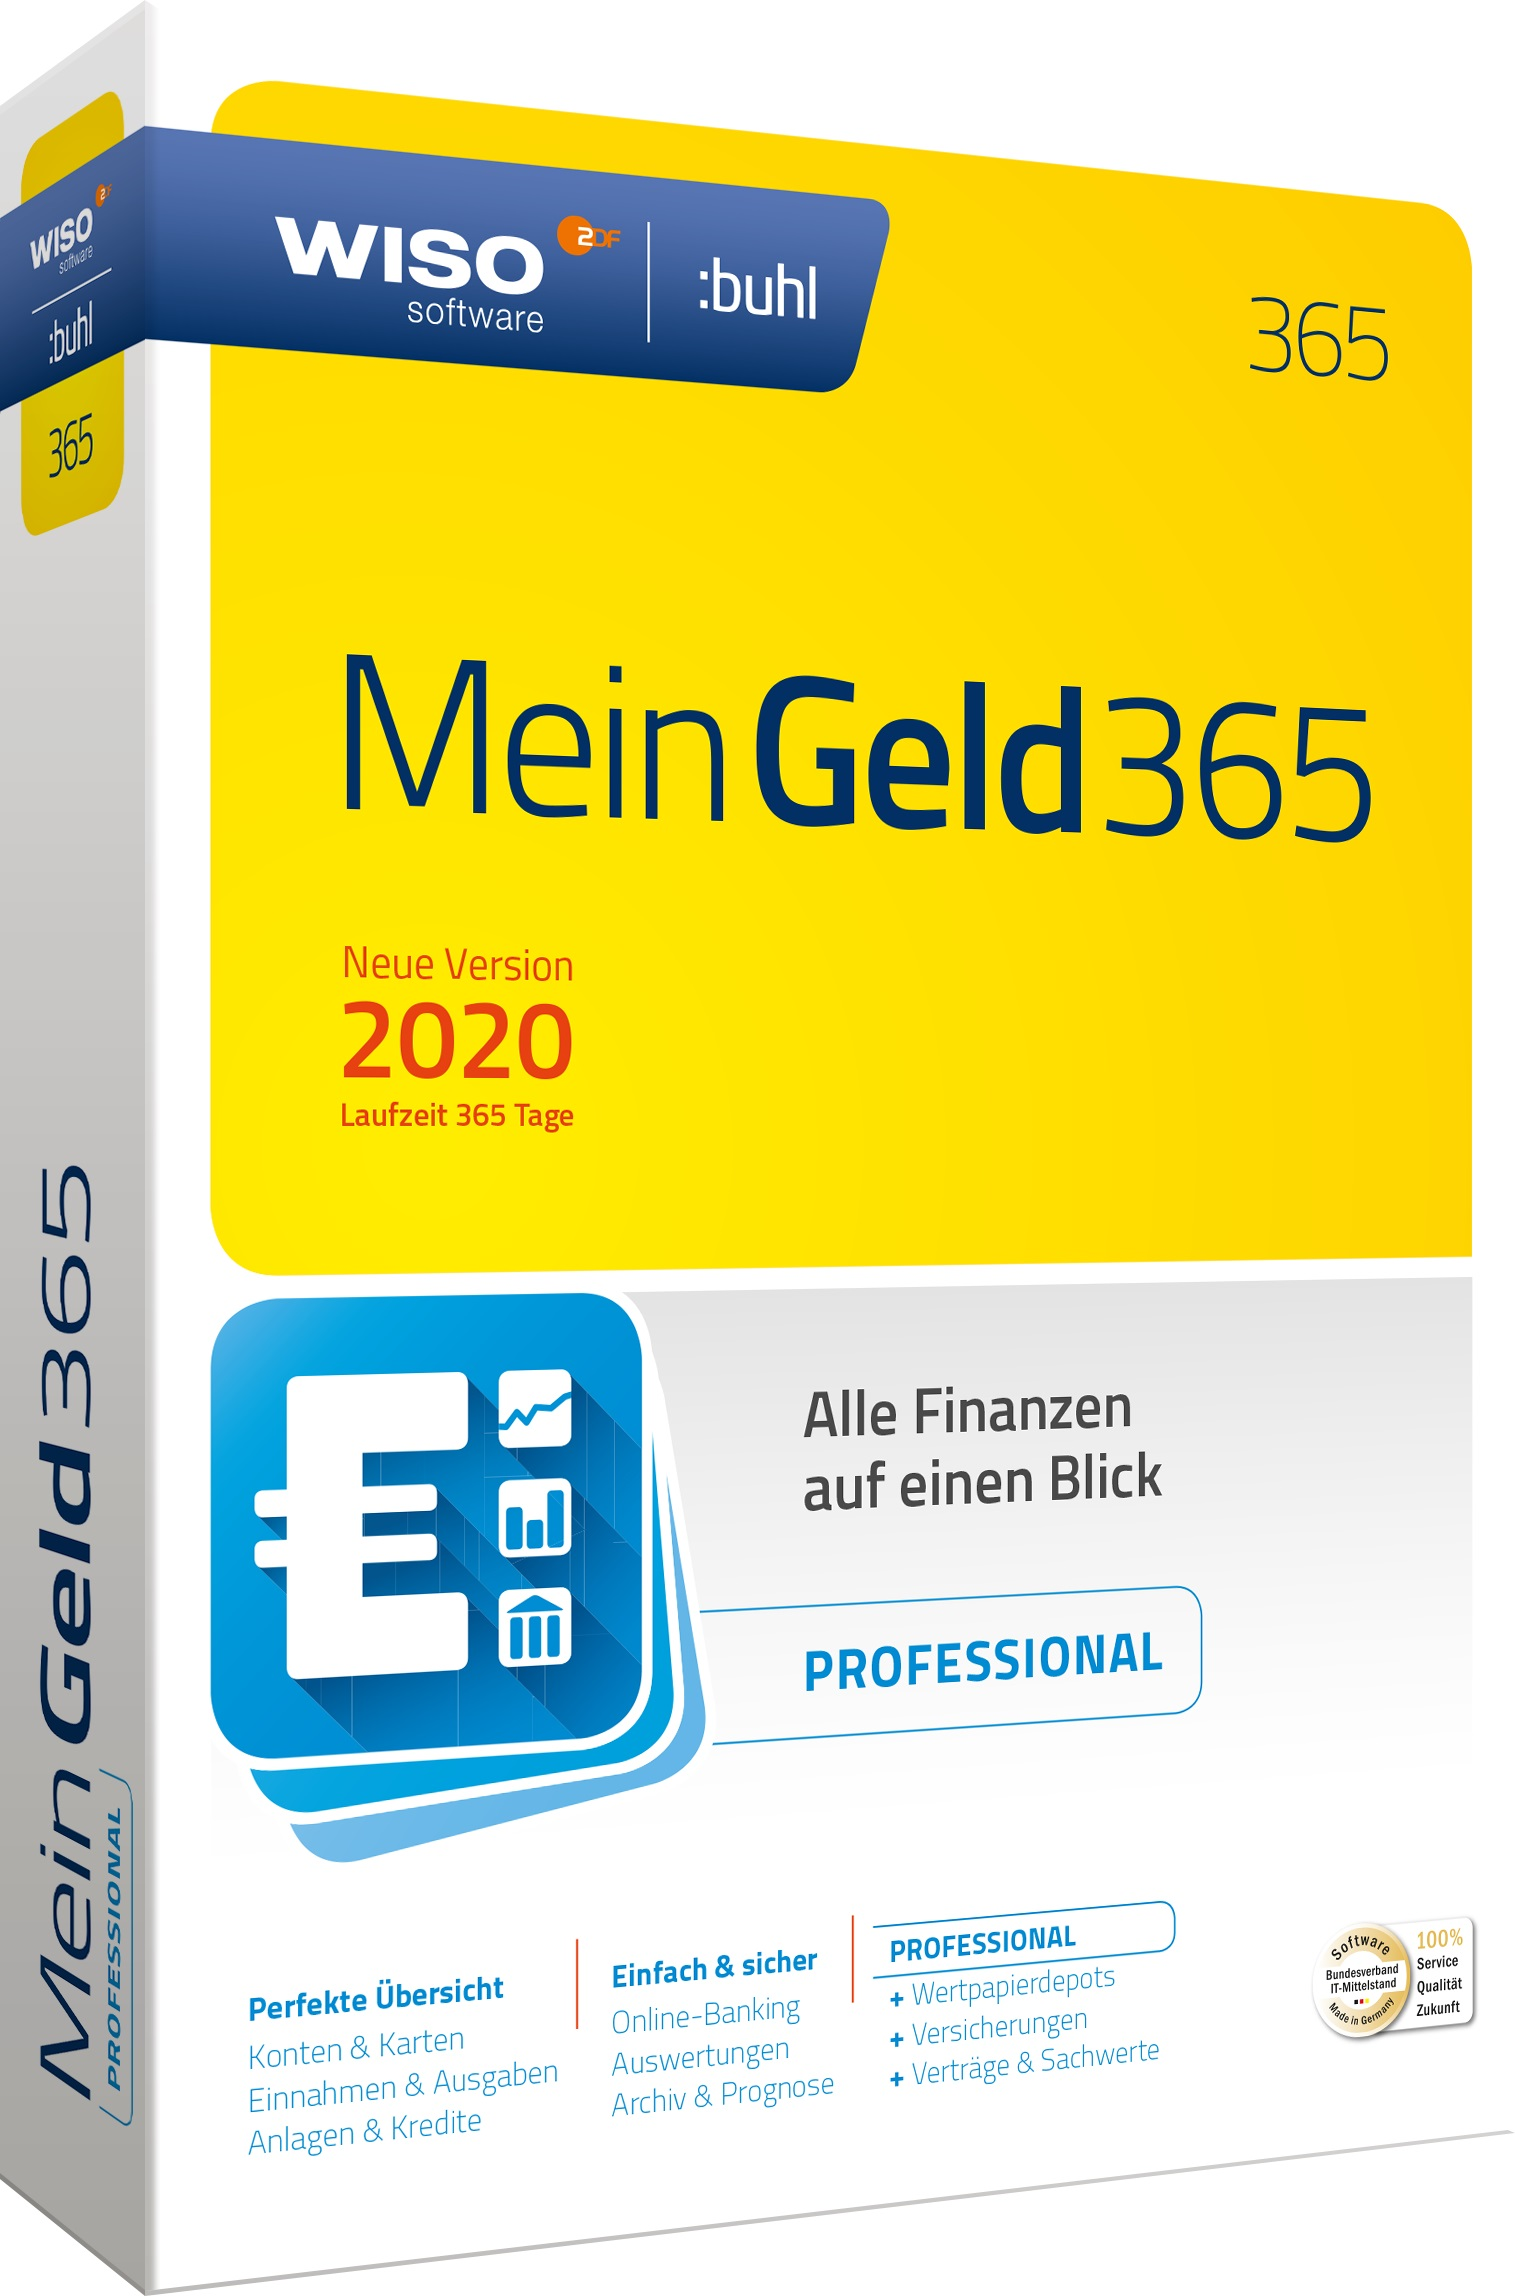 WISO Mein Geld Professional 365 (Version 2020) Download Win Deutsch (DL42638-20)